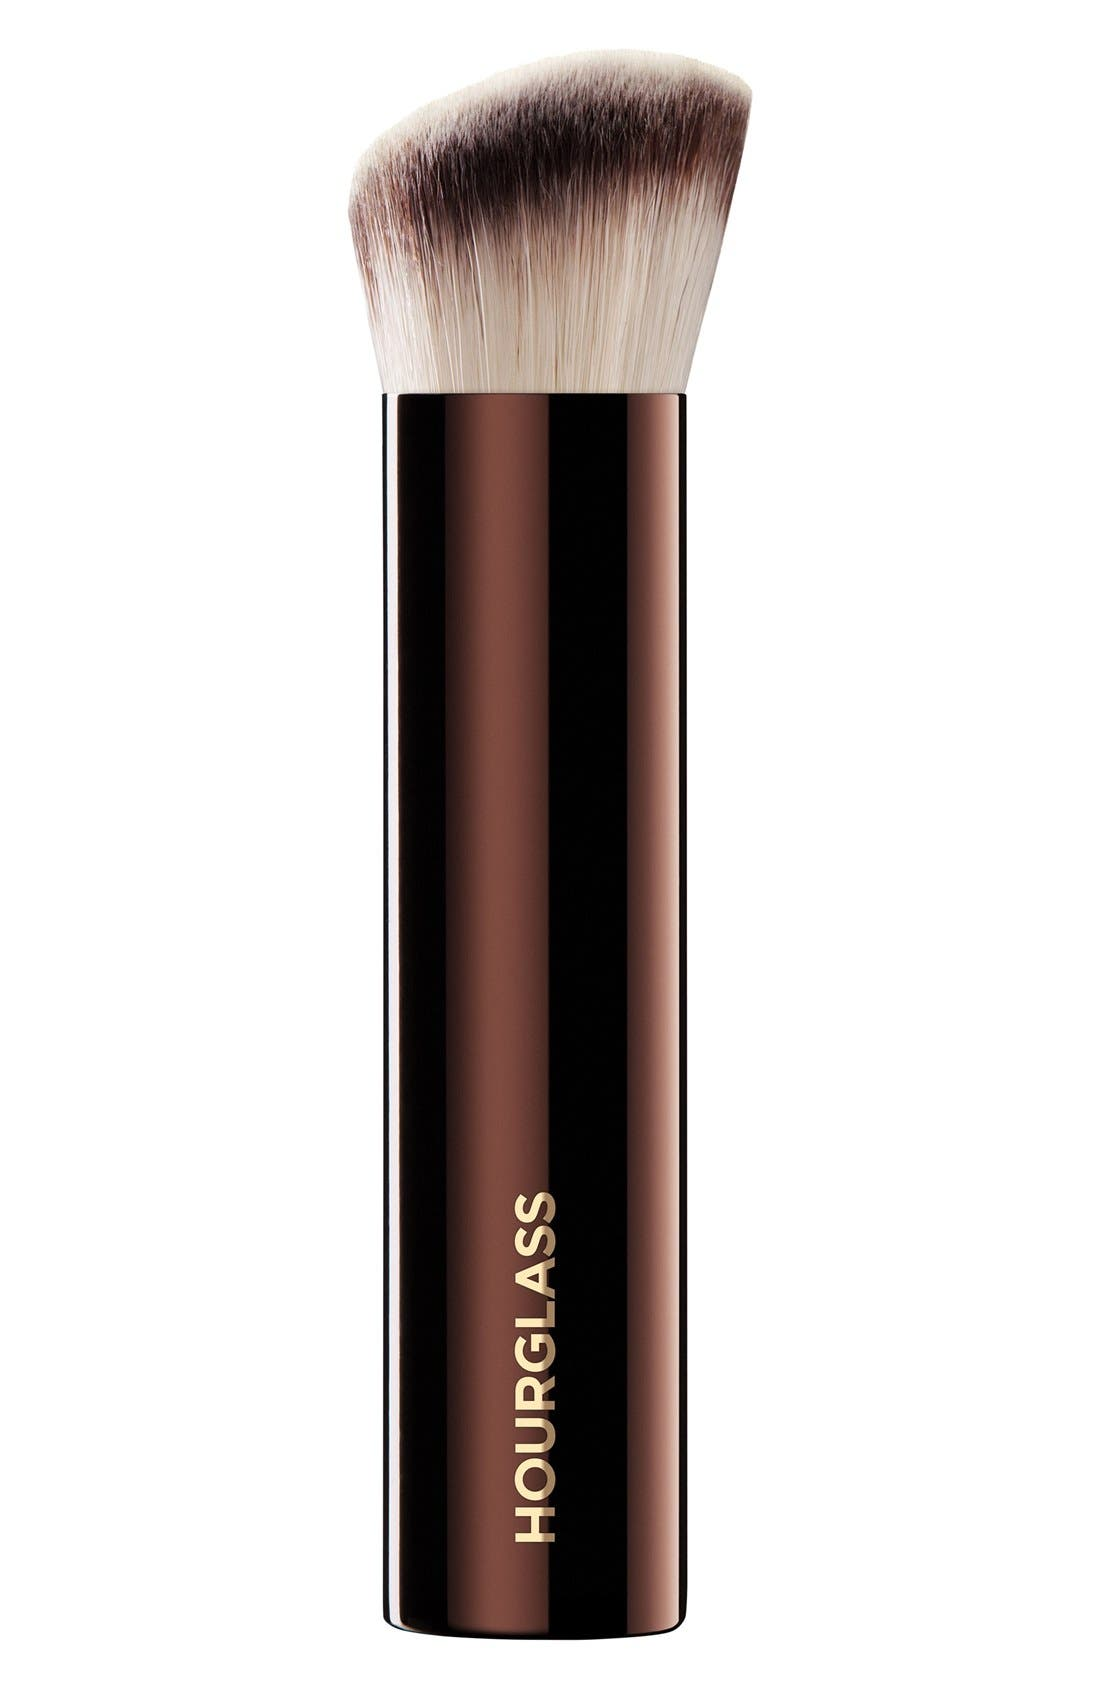 Vanish Seamless Finish Foundation Brush,                         Main,                         color, NO COLOR